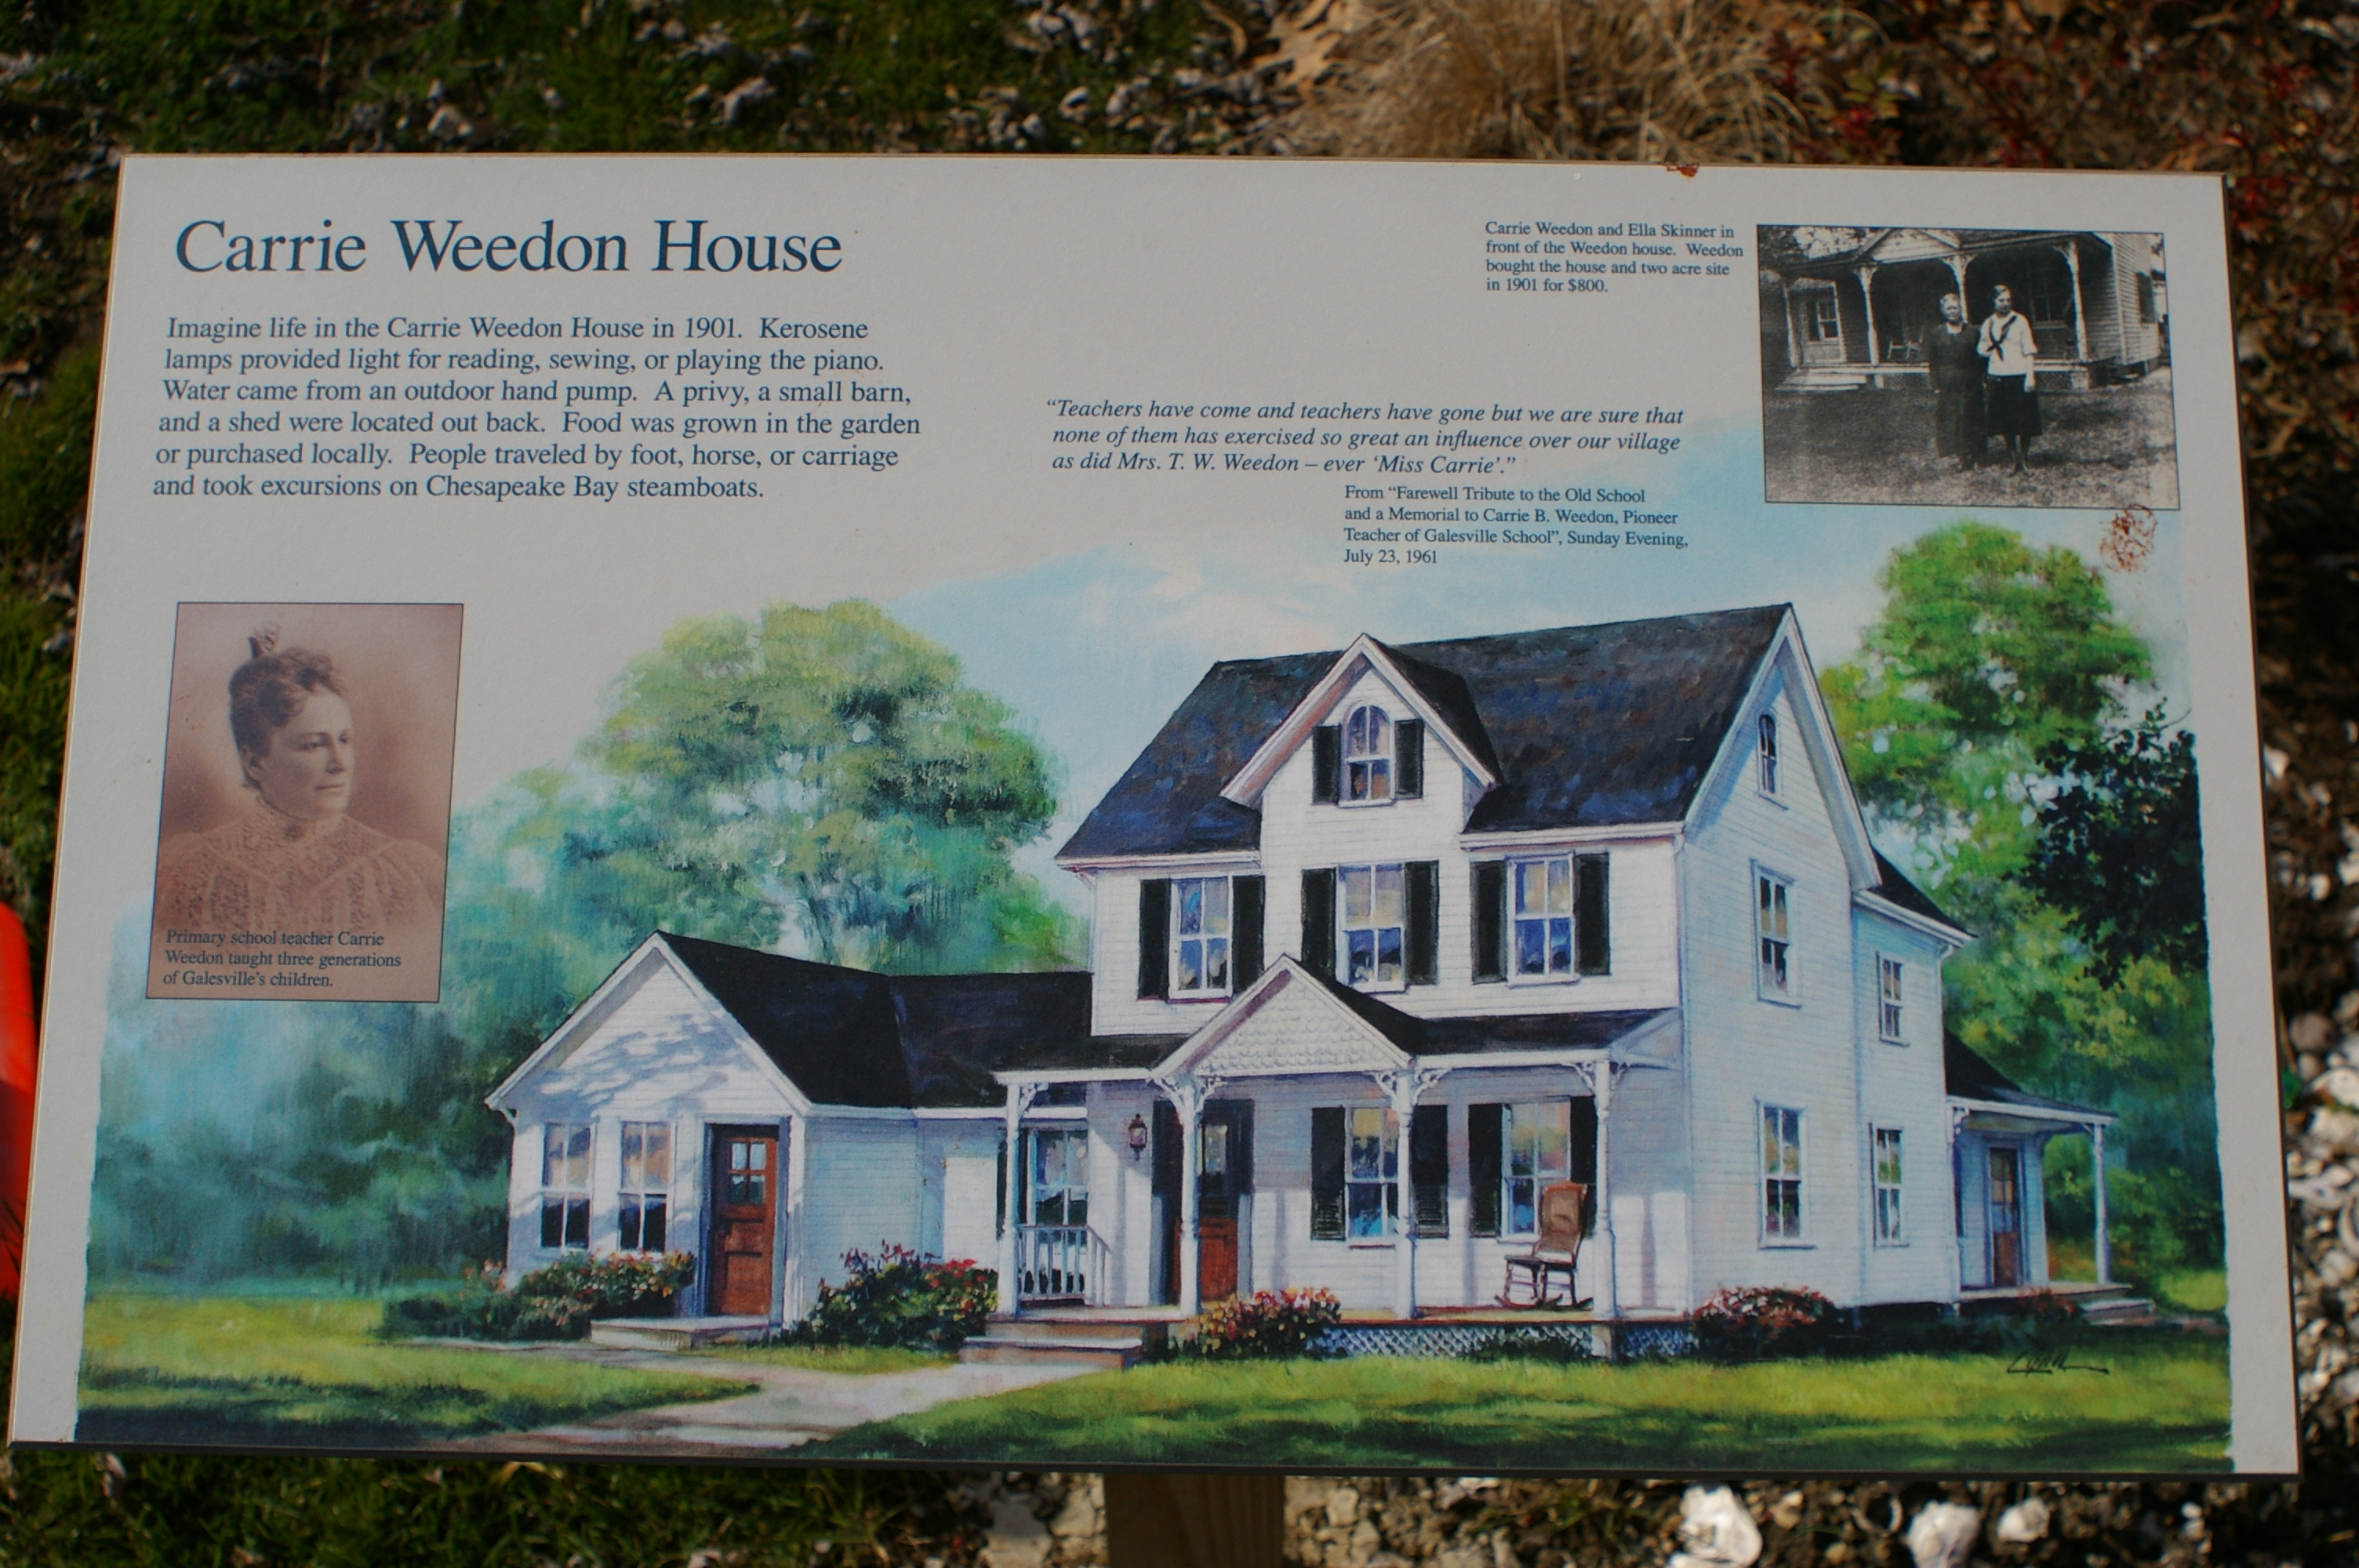 Carrie Weedon House Marker